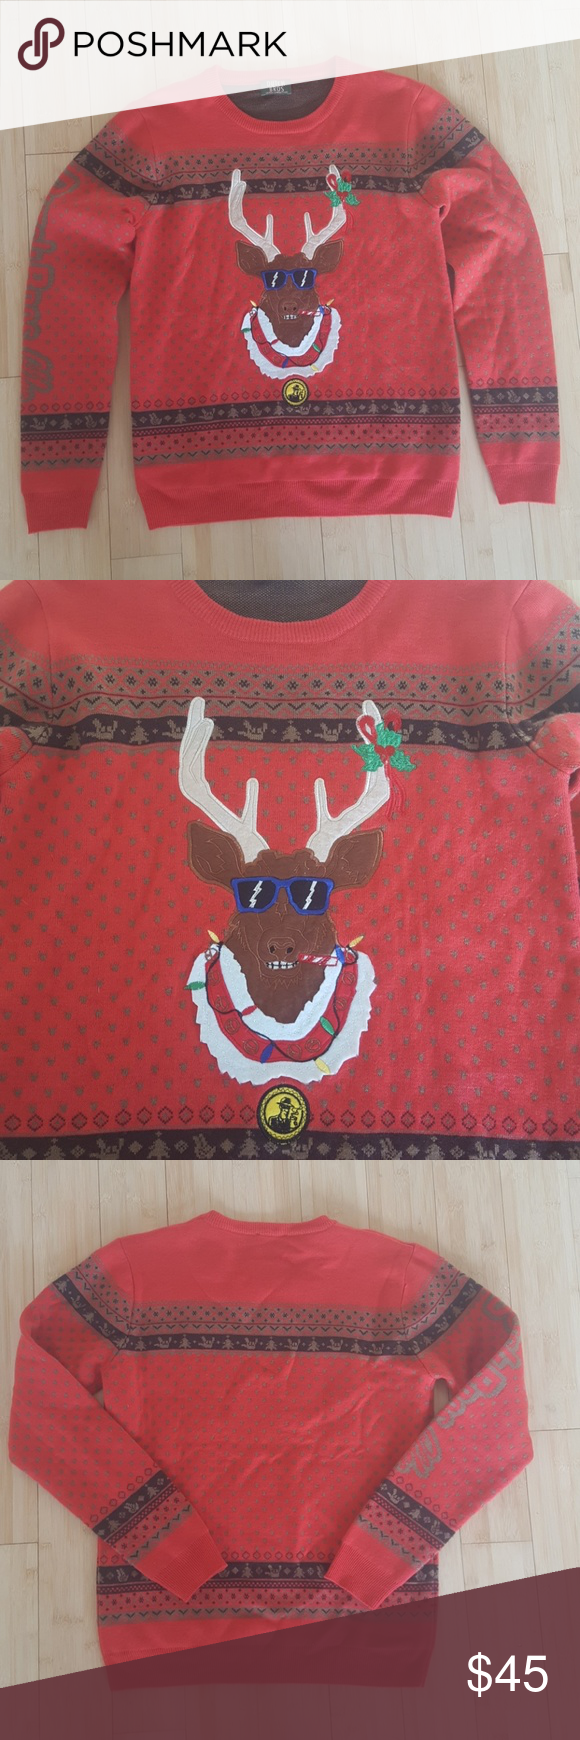 Christmas Sweater Dutch Bros. Ugly sweater Awesome Christmas sweater from Dutch Bros in excellent conditon. Worn maybe 3 times, never to work. Dutch Bros. Sweaters Crew & Scoop Necks #dutchbros Christmas Sweater Dutch Bros. Ugly sweater Awesome Christmas sweater from Dutch Bros in excellent conditon. Worn maybe 3 times, never to work. Dutch Bros. Sweaters Crew & Scoop Necks #dutchbros